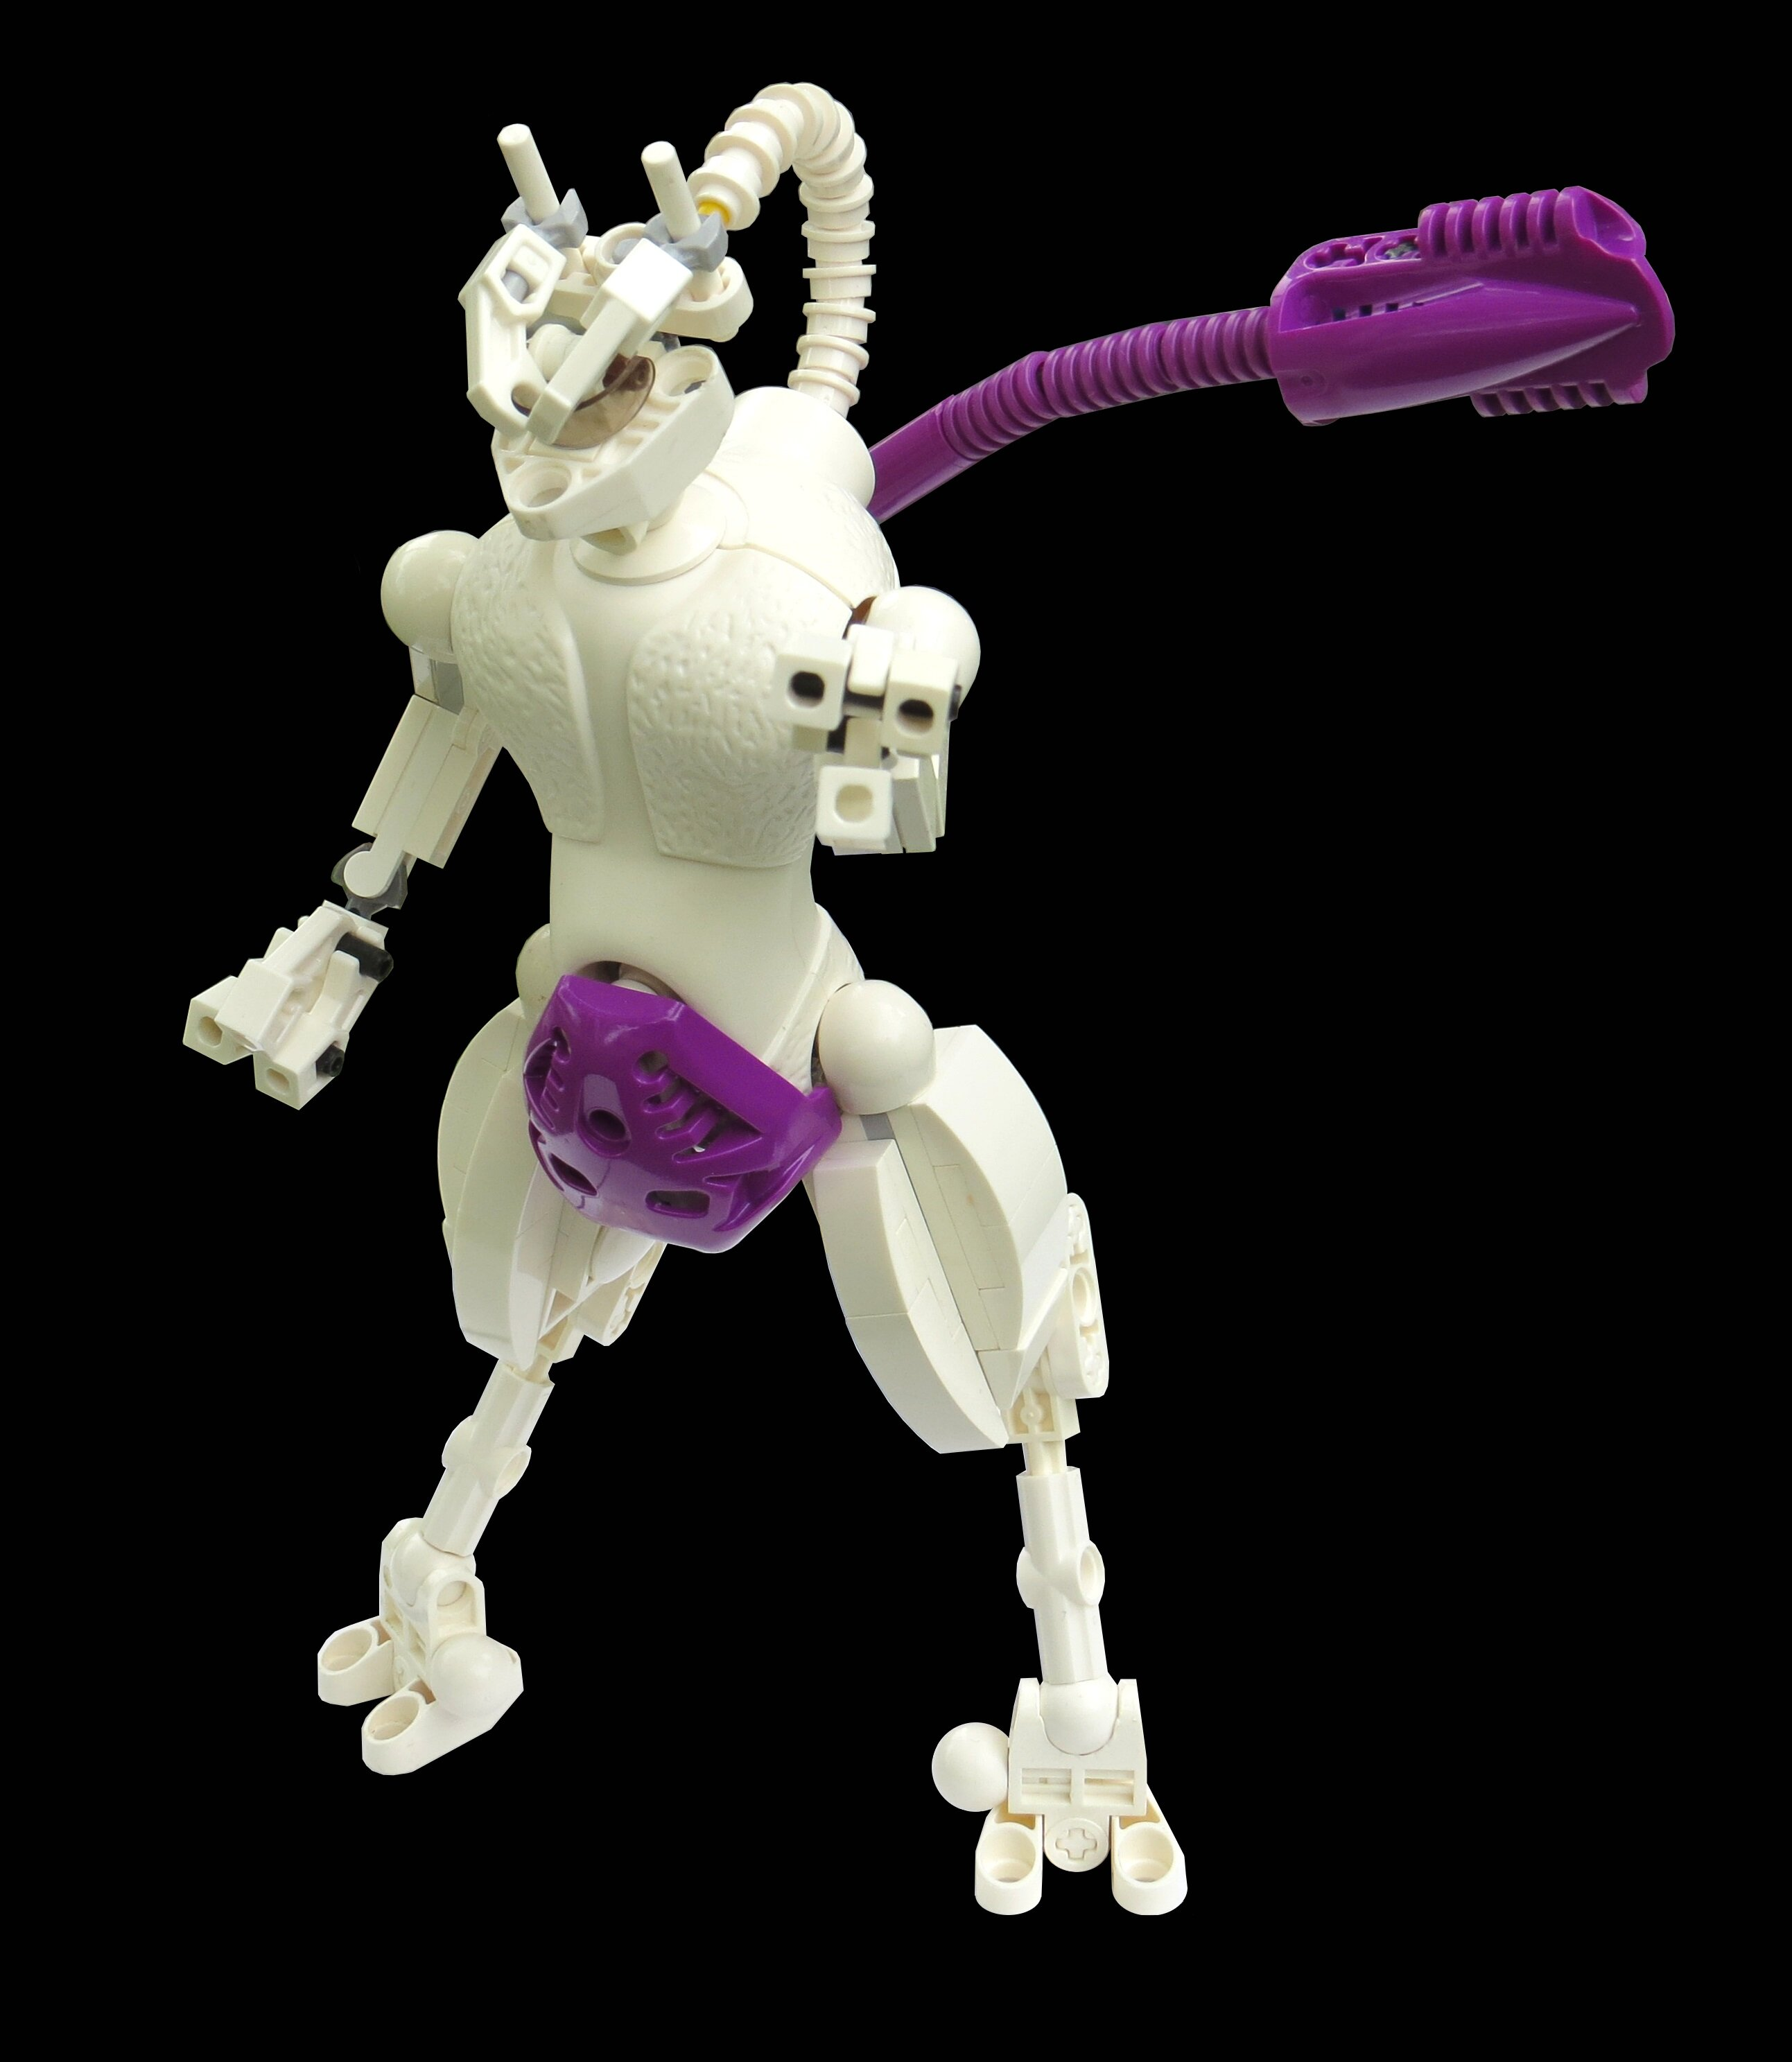 Mewtwo The Genetic Pokémon Lego Creations The Ttv Message Boards